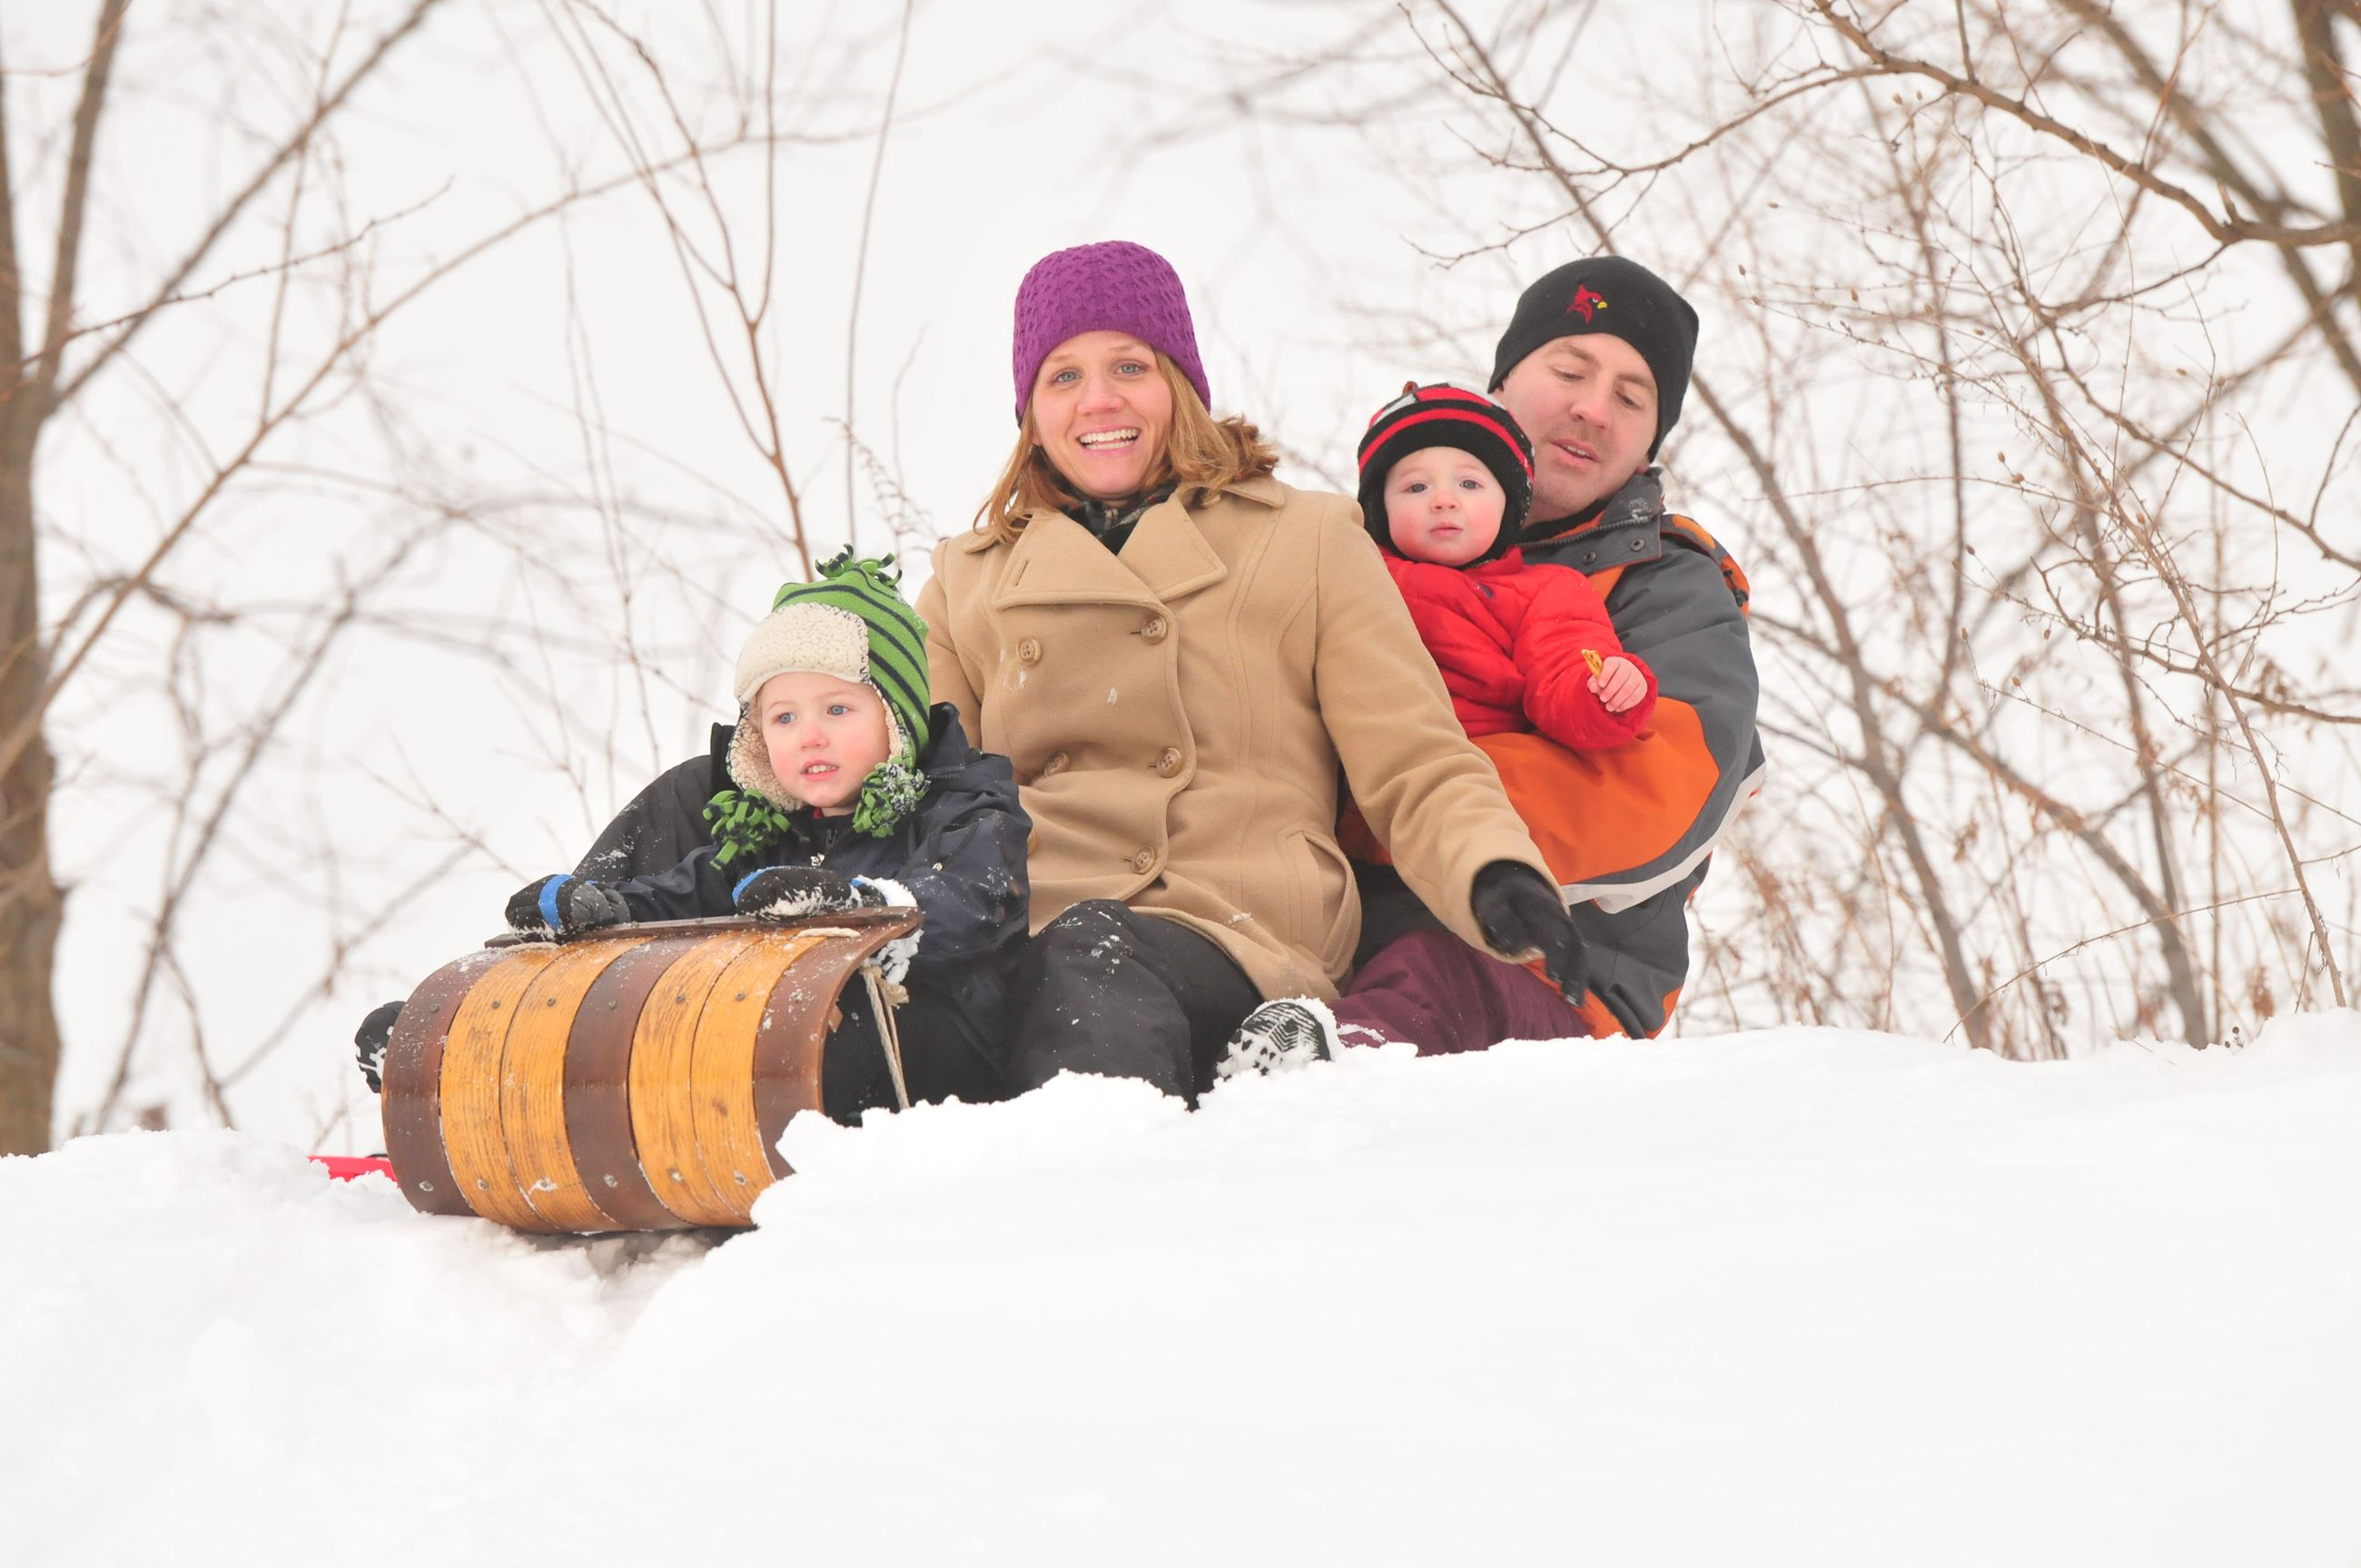 ontario-county-victor-dryer-road-park-sledding